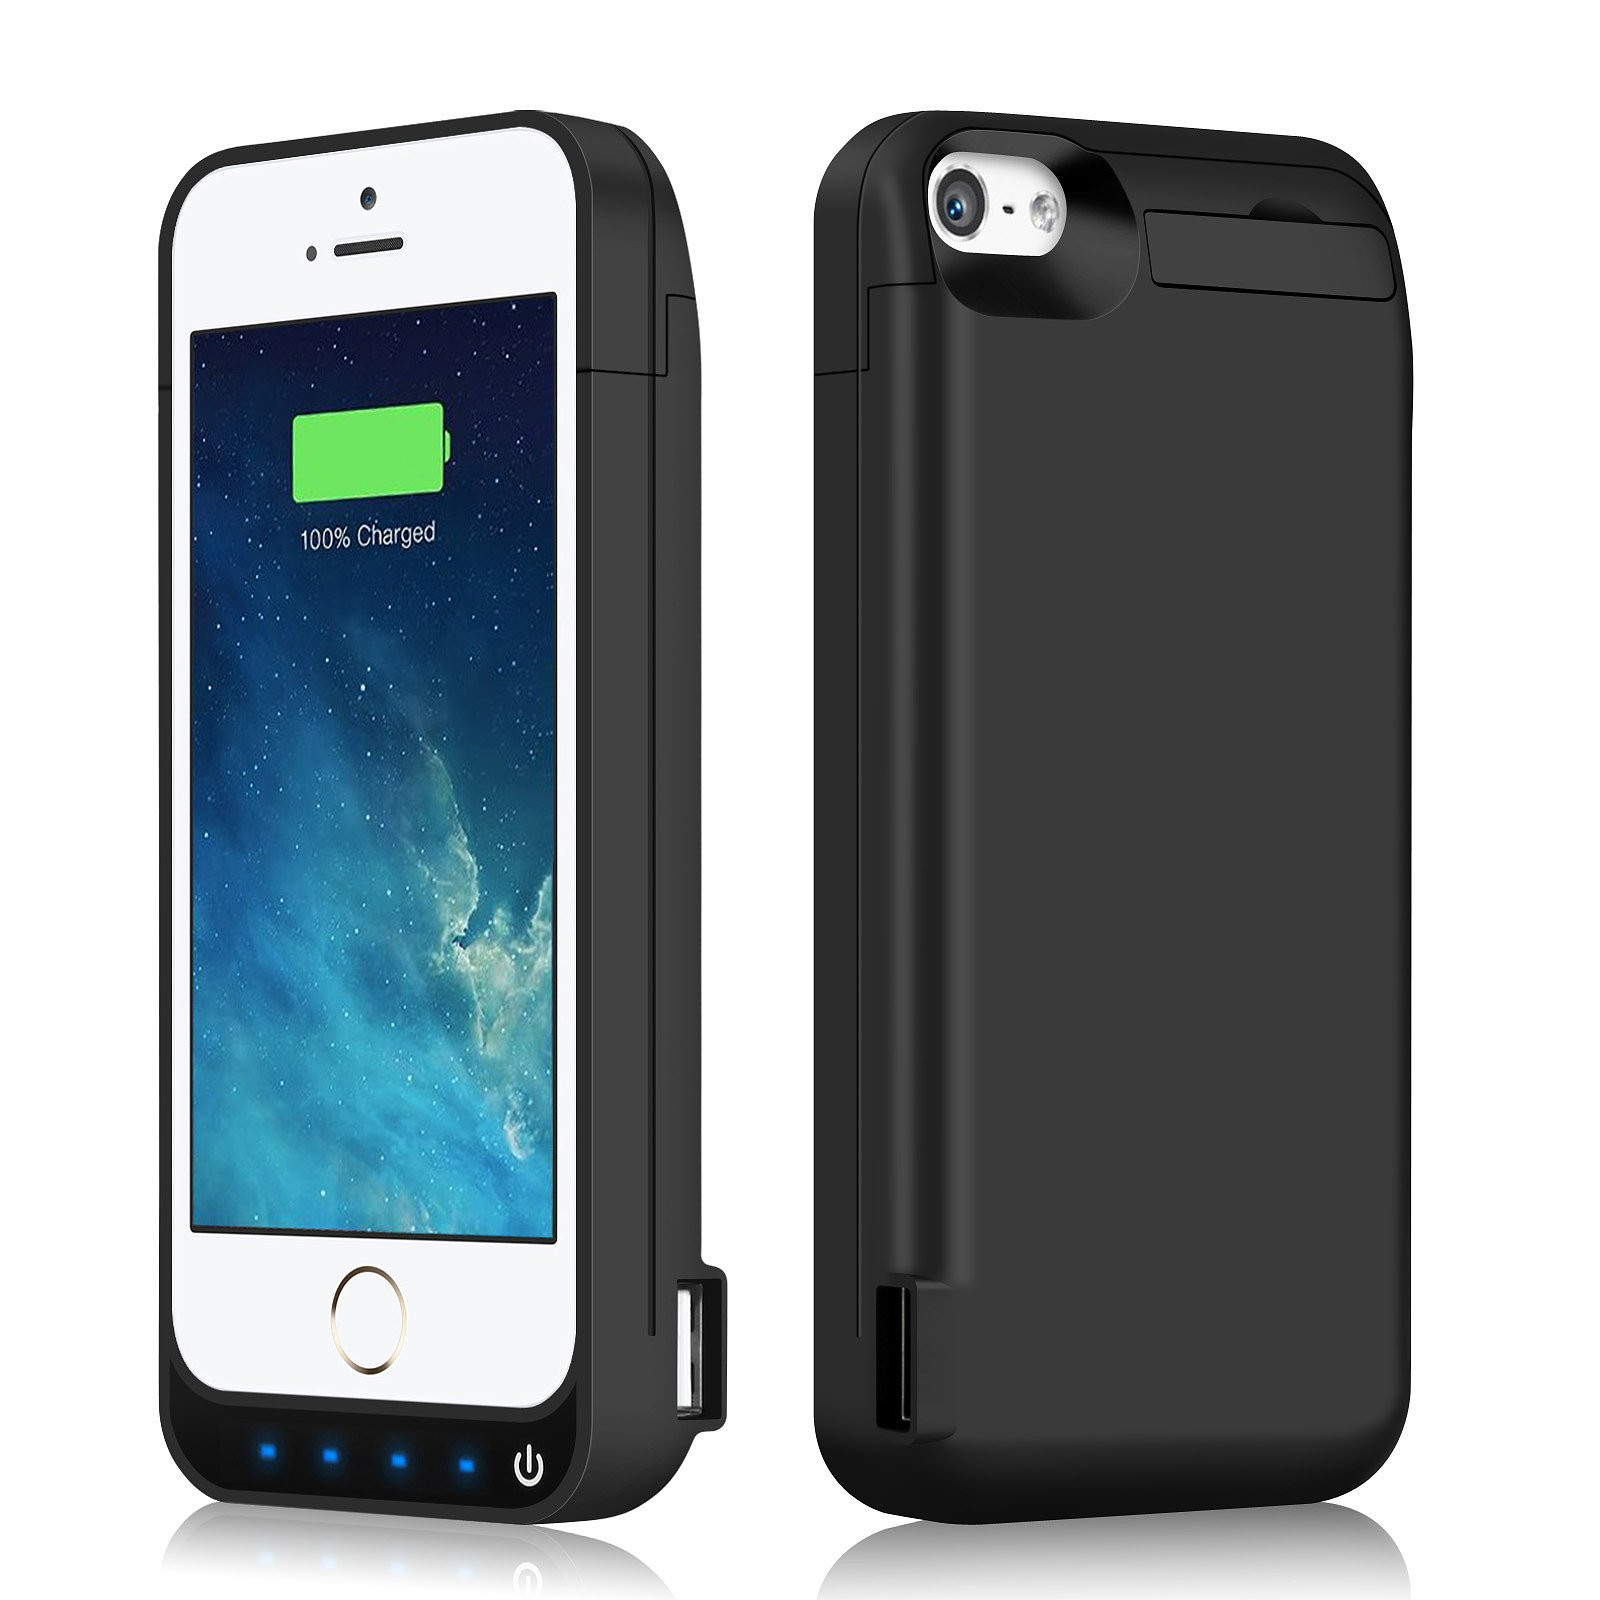 iPhone 5/5S/5C/SE Battery Case iPosible 4500mAh External Rechargeable Charger Case for iPhone 5/5S/5C/SE Charging Case Power Juice Bank Battery Pack [24 Month Warranty]